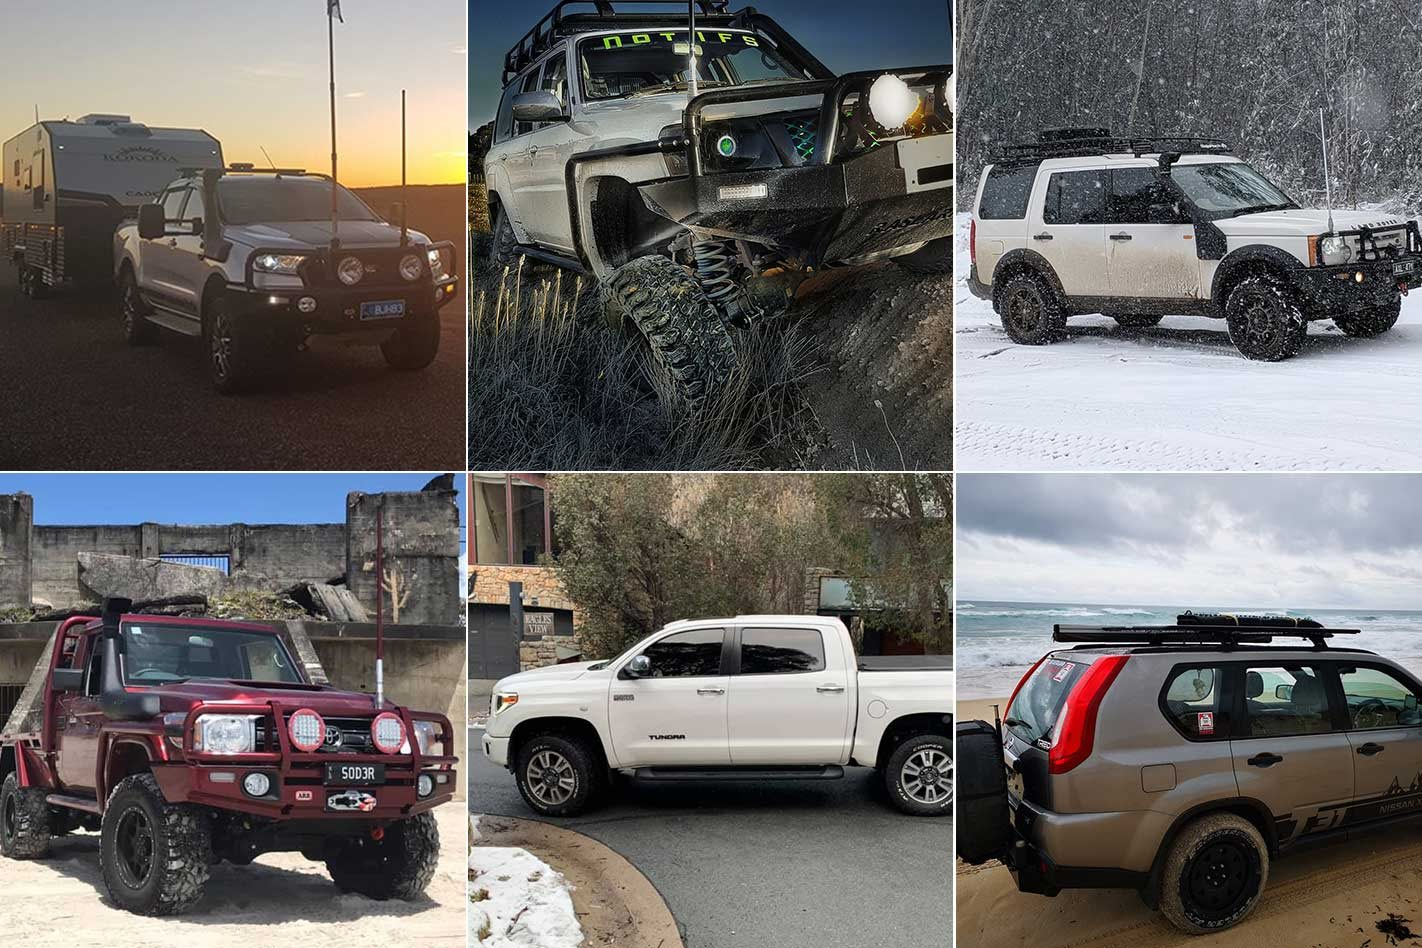 Nissan GU Patrol, Toyota Tundra and more in September's Readers' Rigs